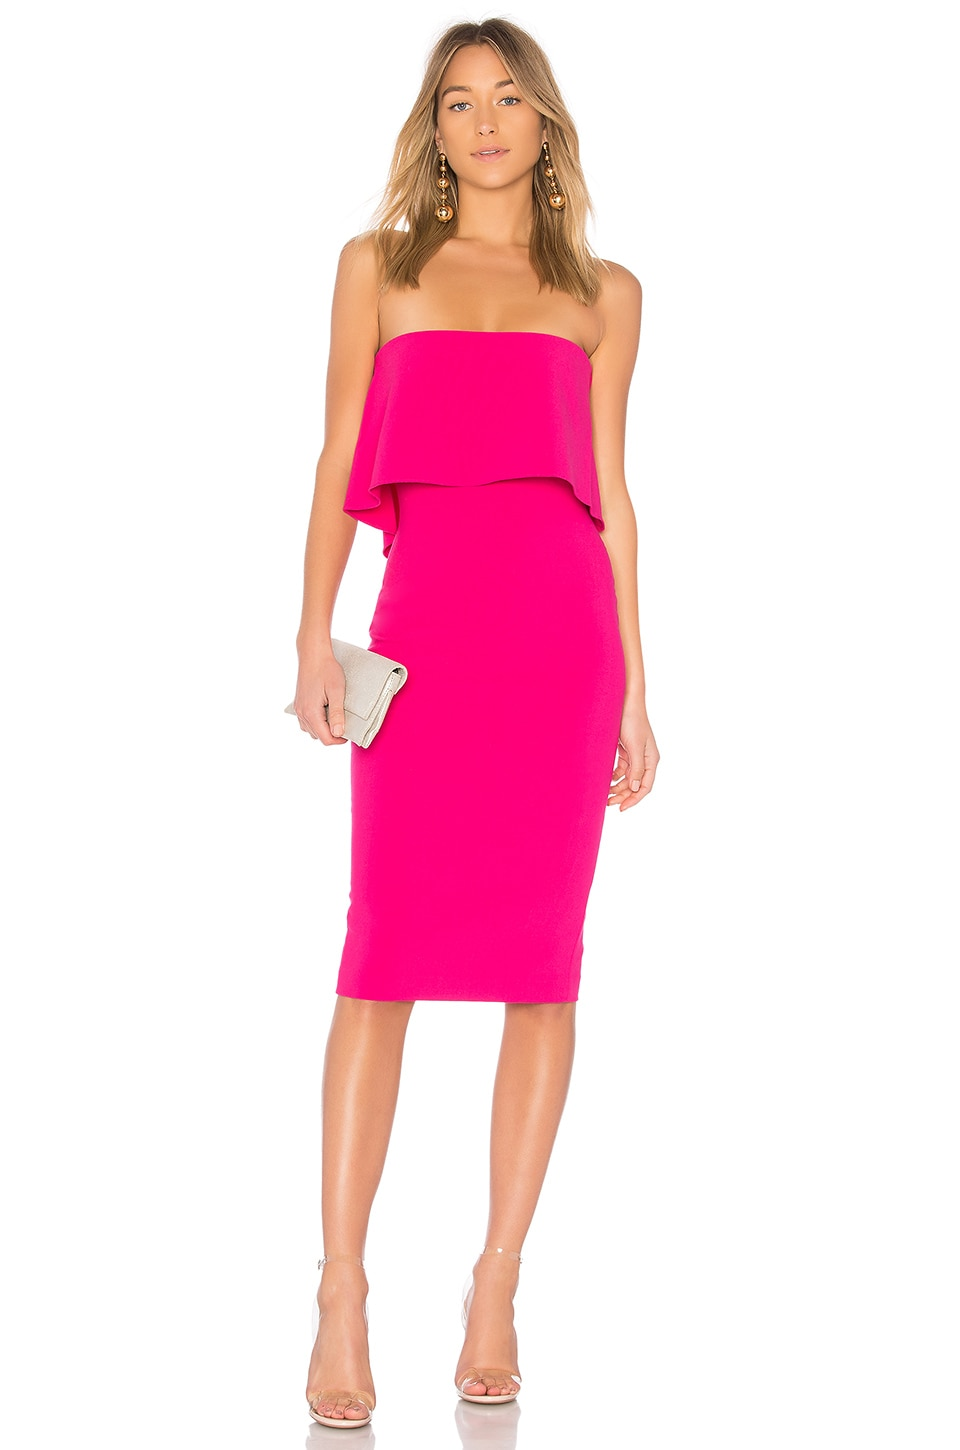 LIKELY Driggs Dress in Fuchsia